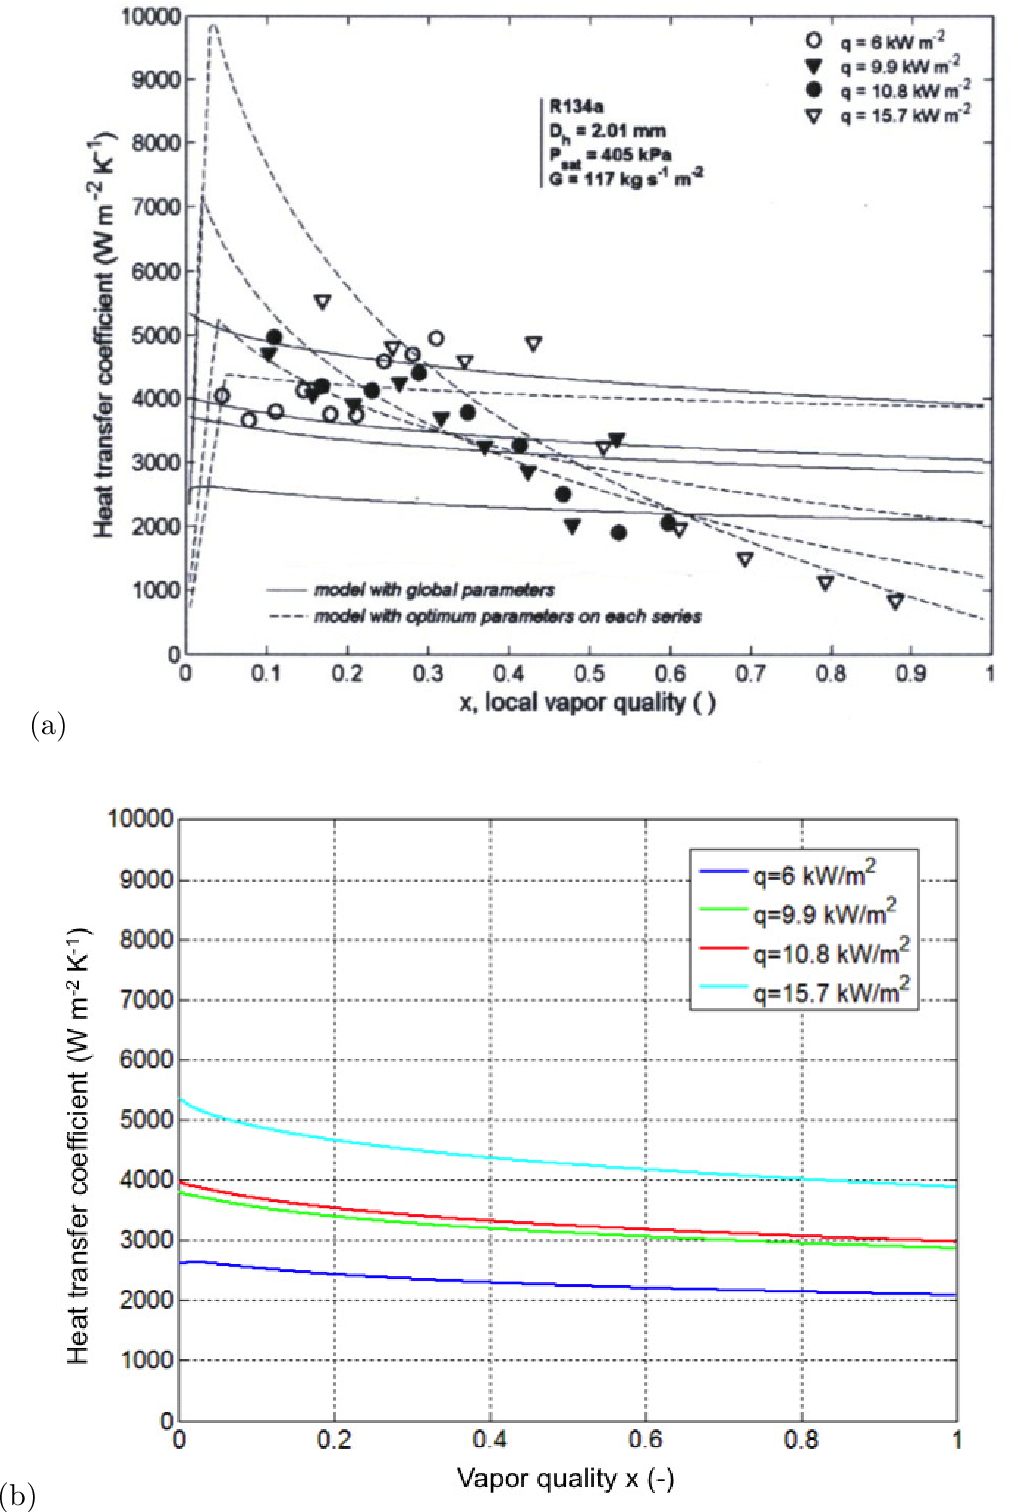 Figure C.6: Validation of the Matlab implementation of the three-zone model of Thome et al. (2004) using the global parameters: (a) the results available in the literature, and (b) the simulated heat transfer coefficients.